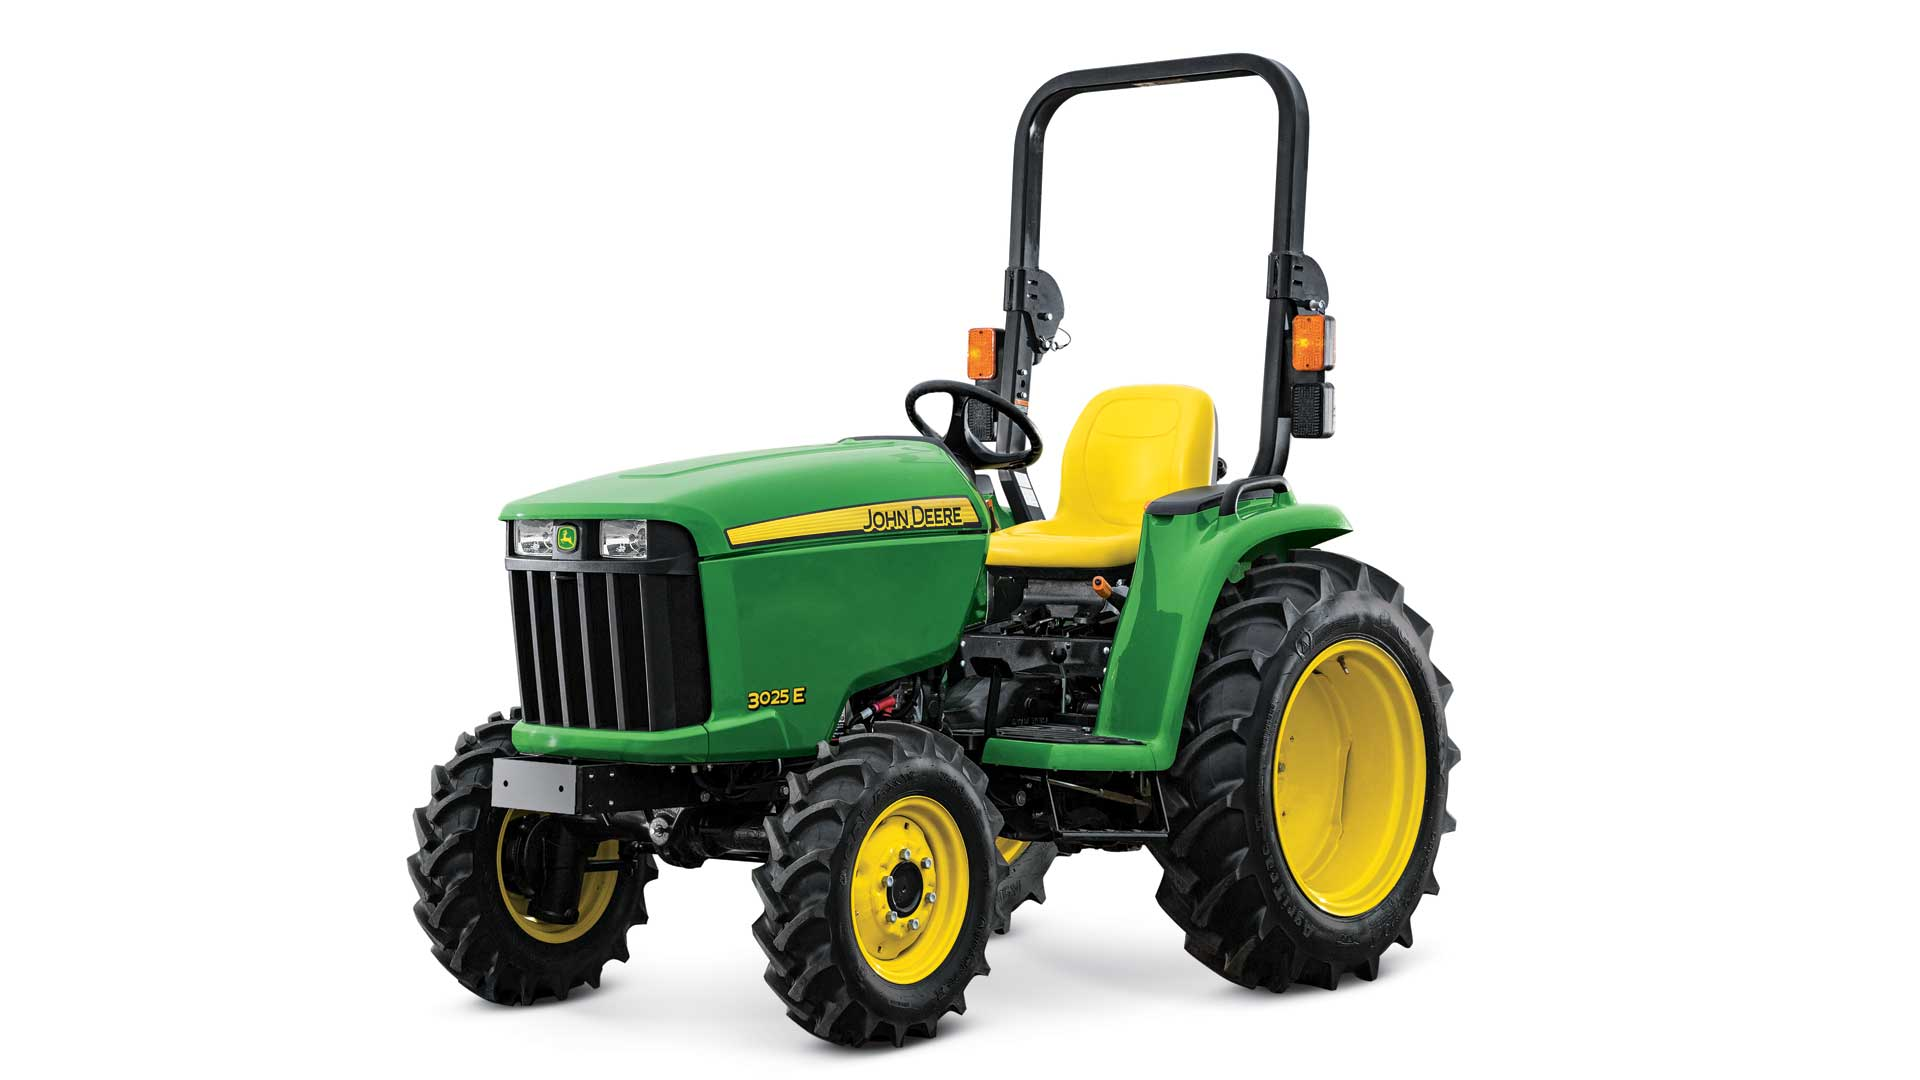 John Deere Tractor Vector At Getdrawings Com Free For Personal Use